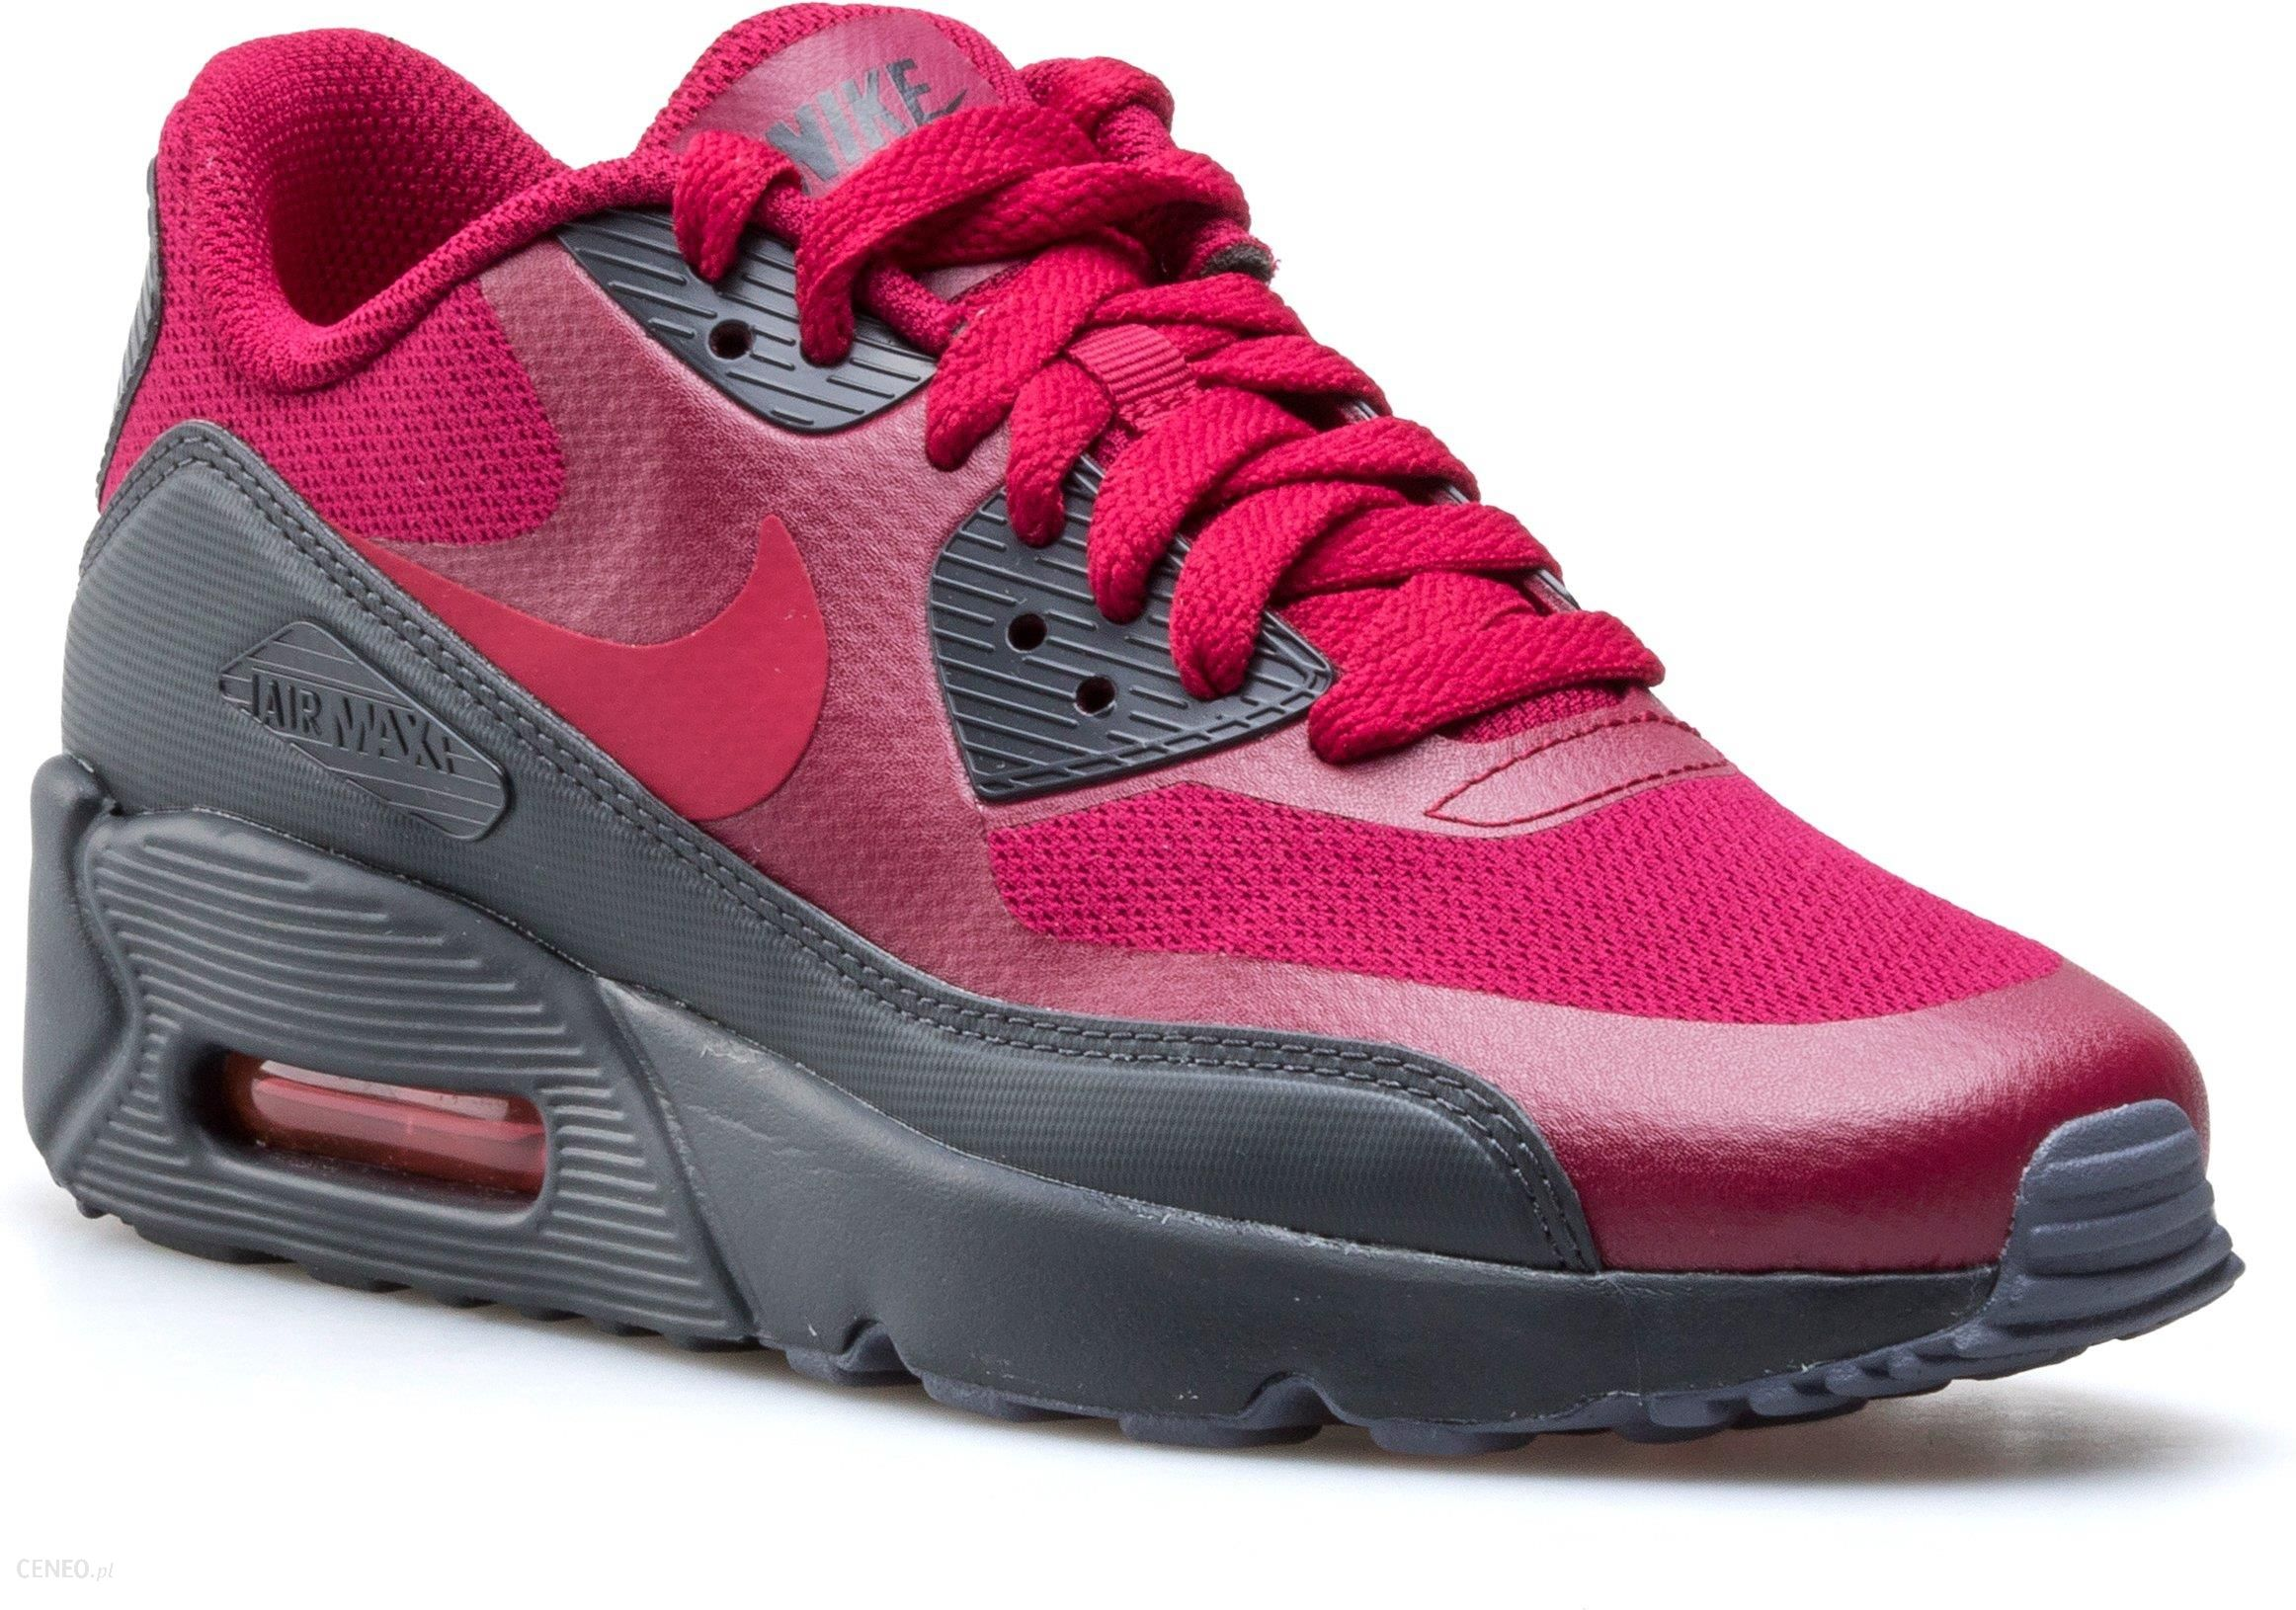 san francisco 051d3 8815c ... low cost buty nike air max 90 ultra 2.0 869950 600 r.